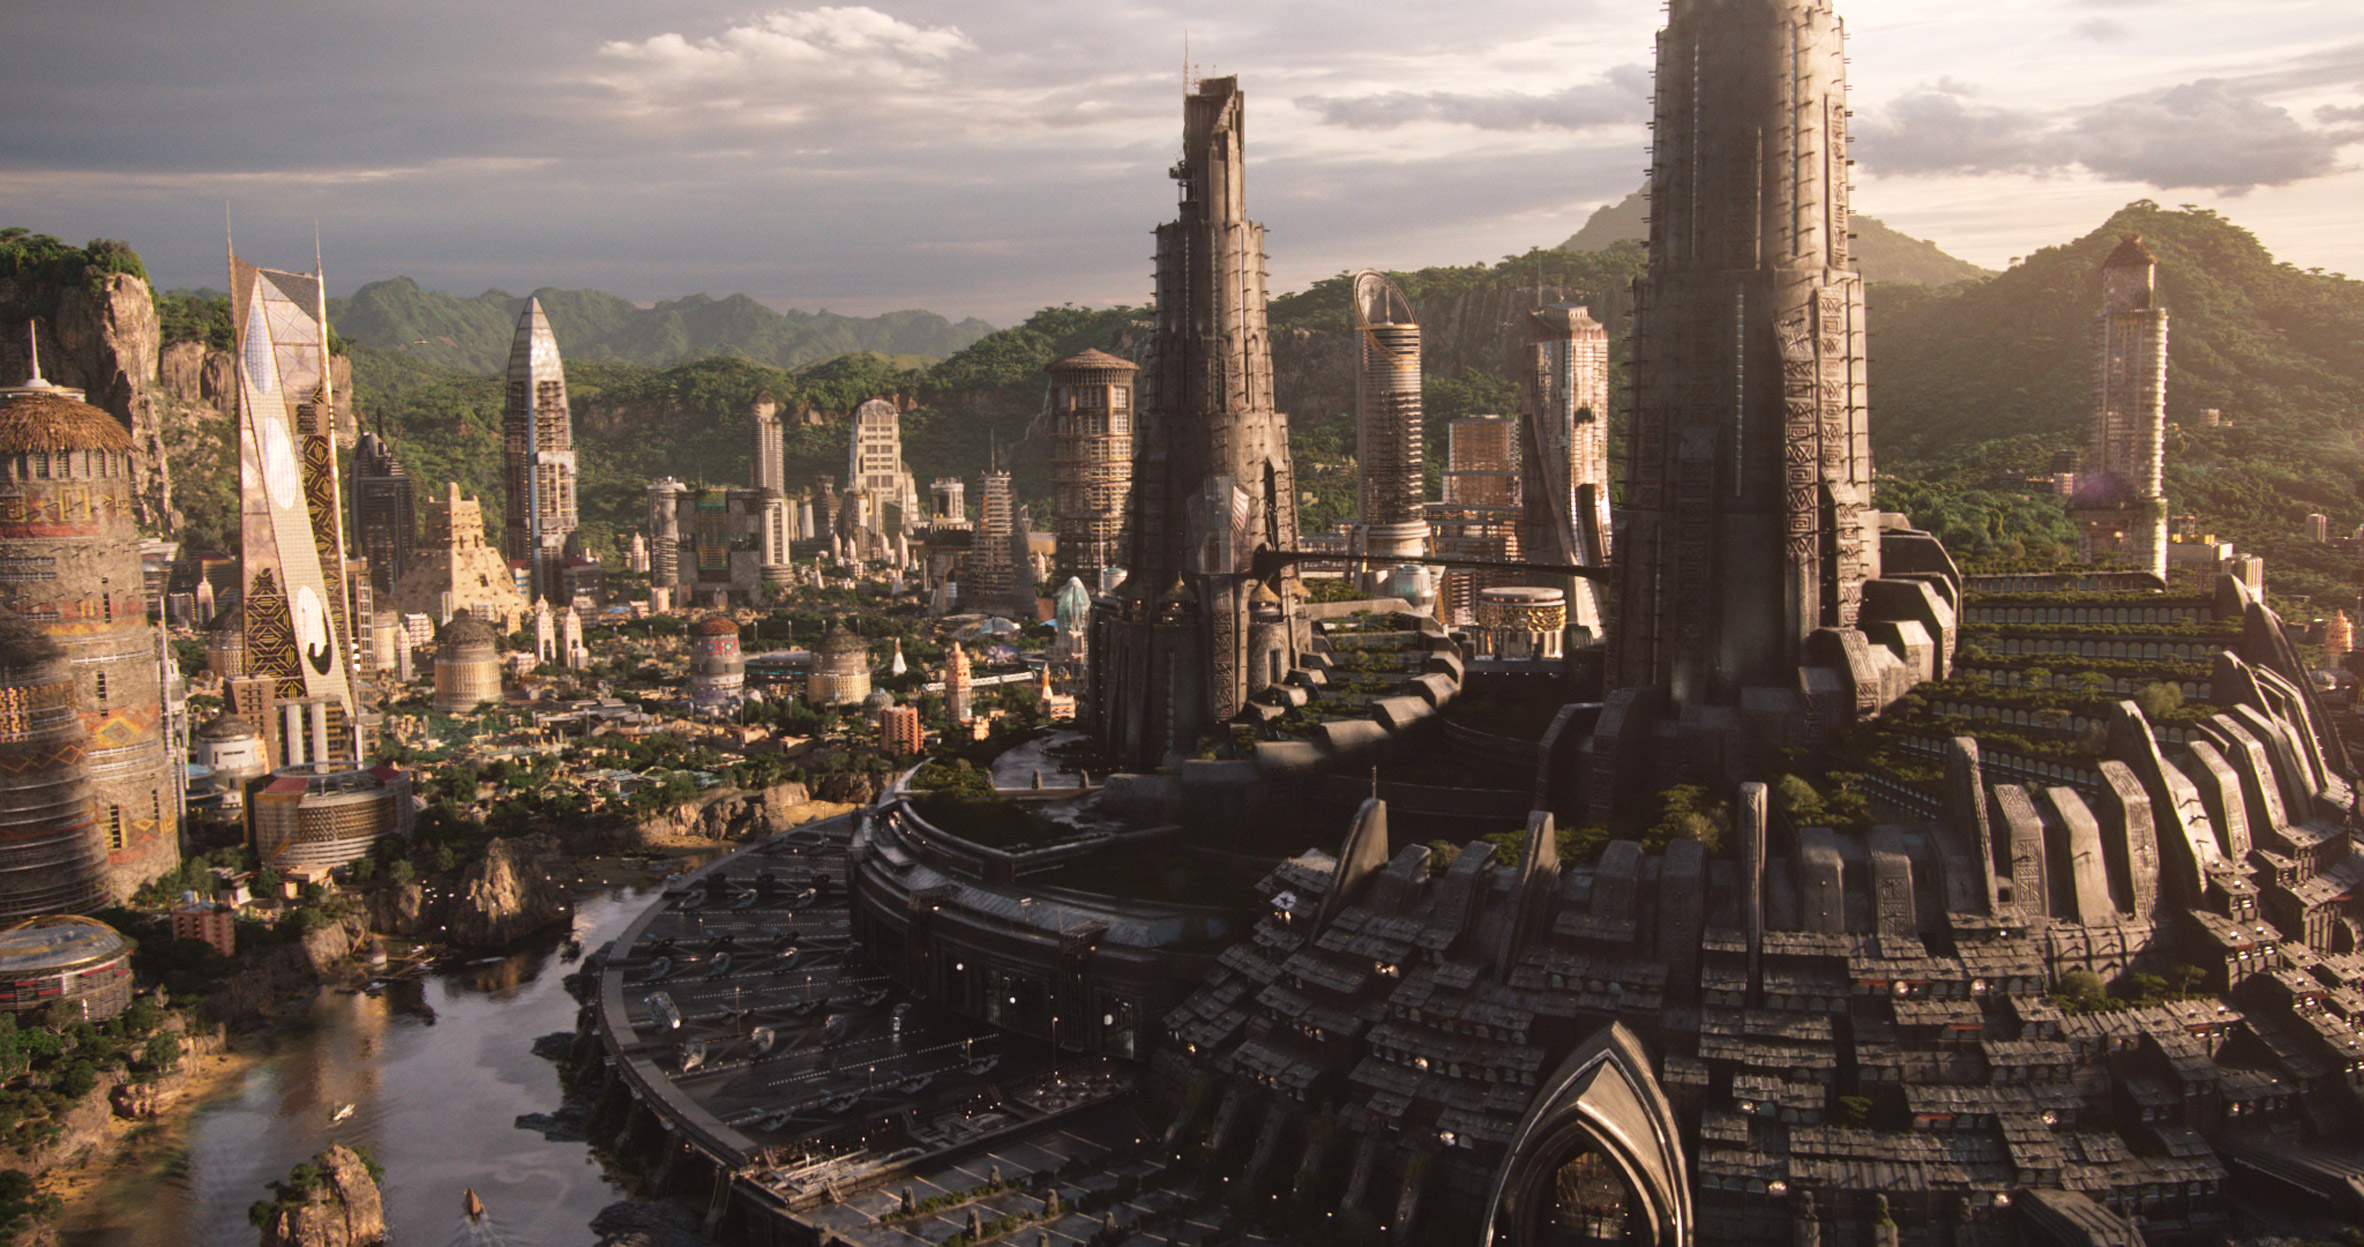 black-panther-marvel-hannah-beachler-set-design-feature-interview_dezeen_2364_col_99